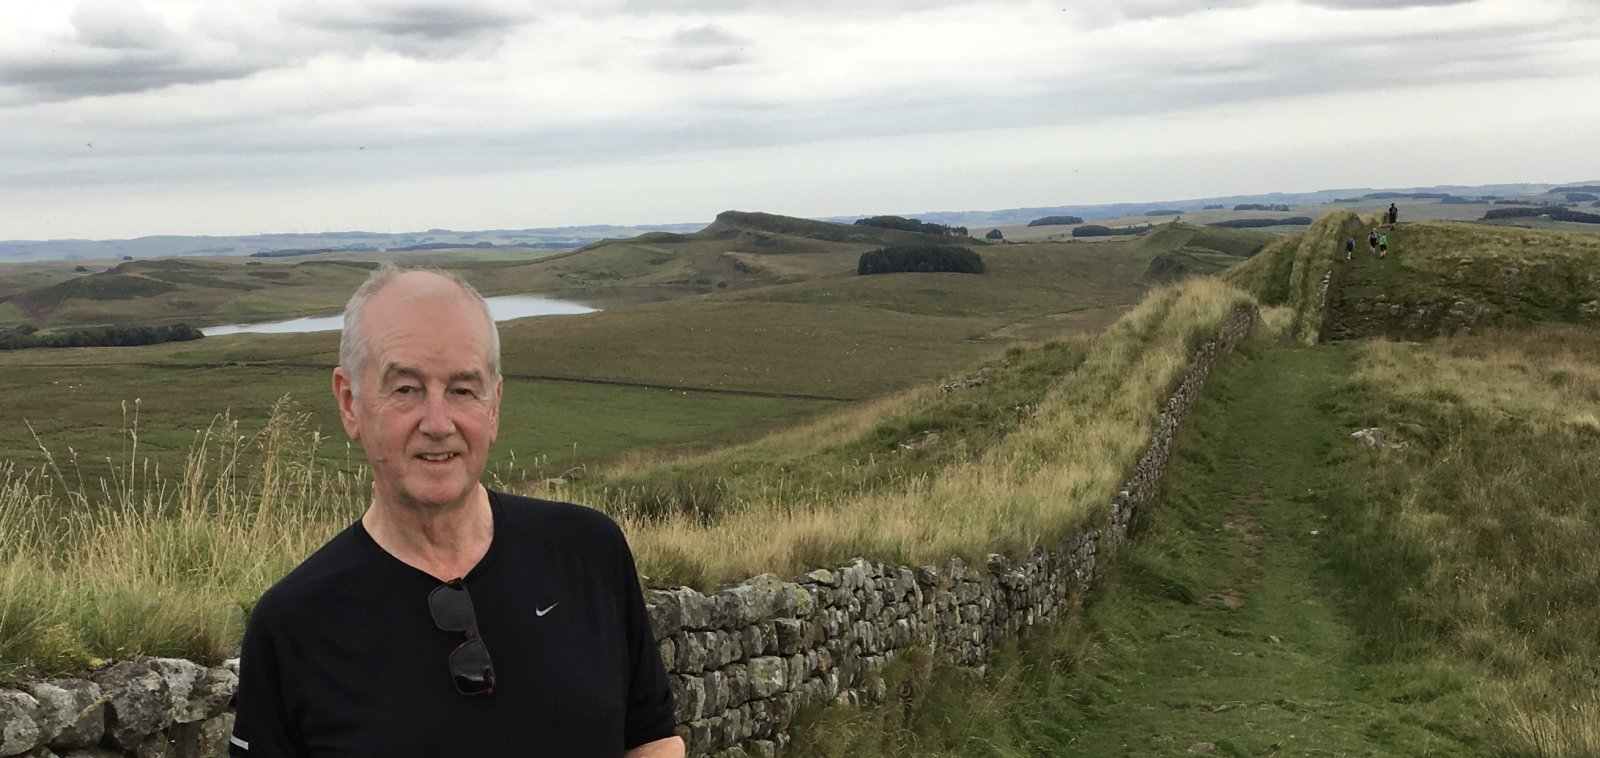 David Almond on Hadrian's Wall